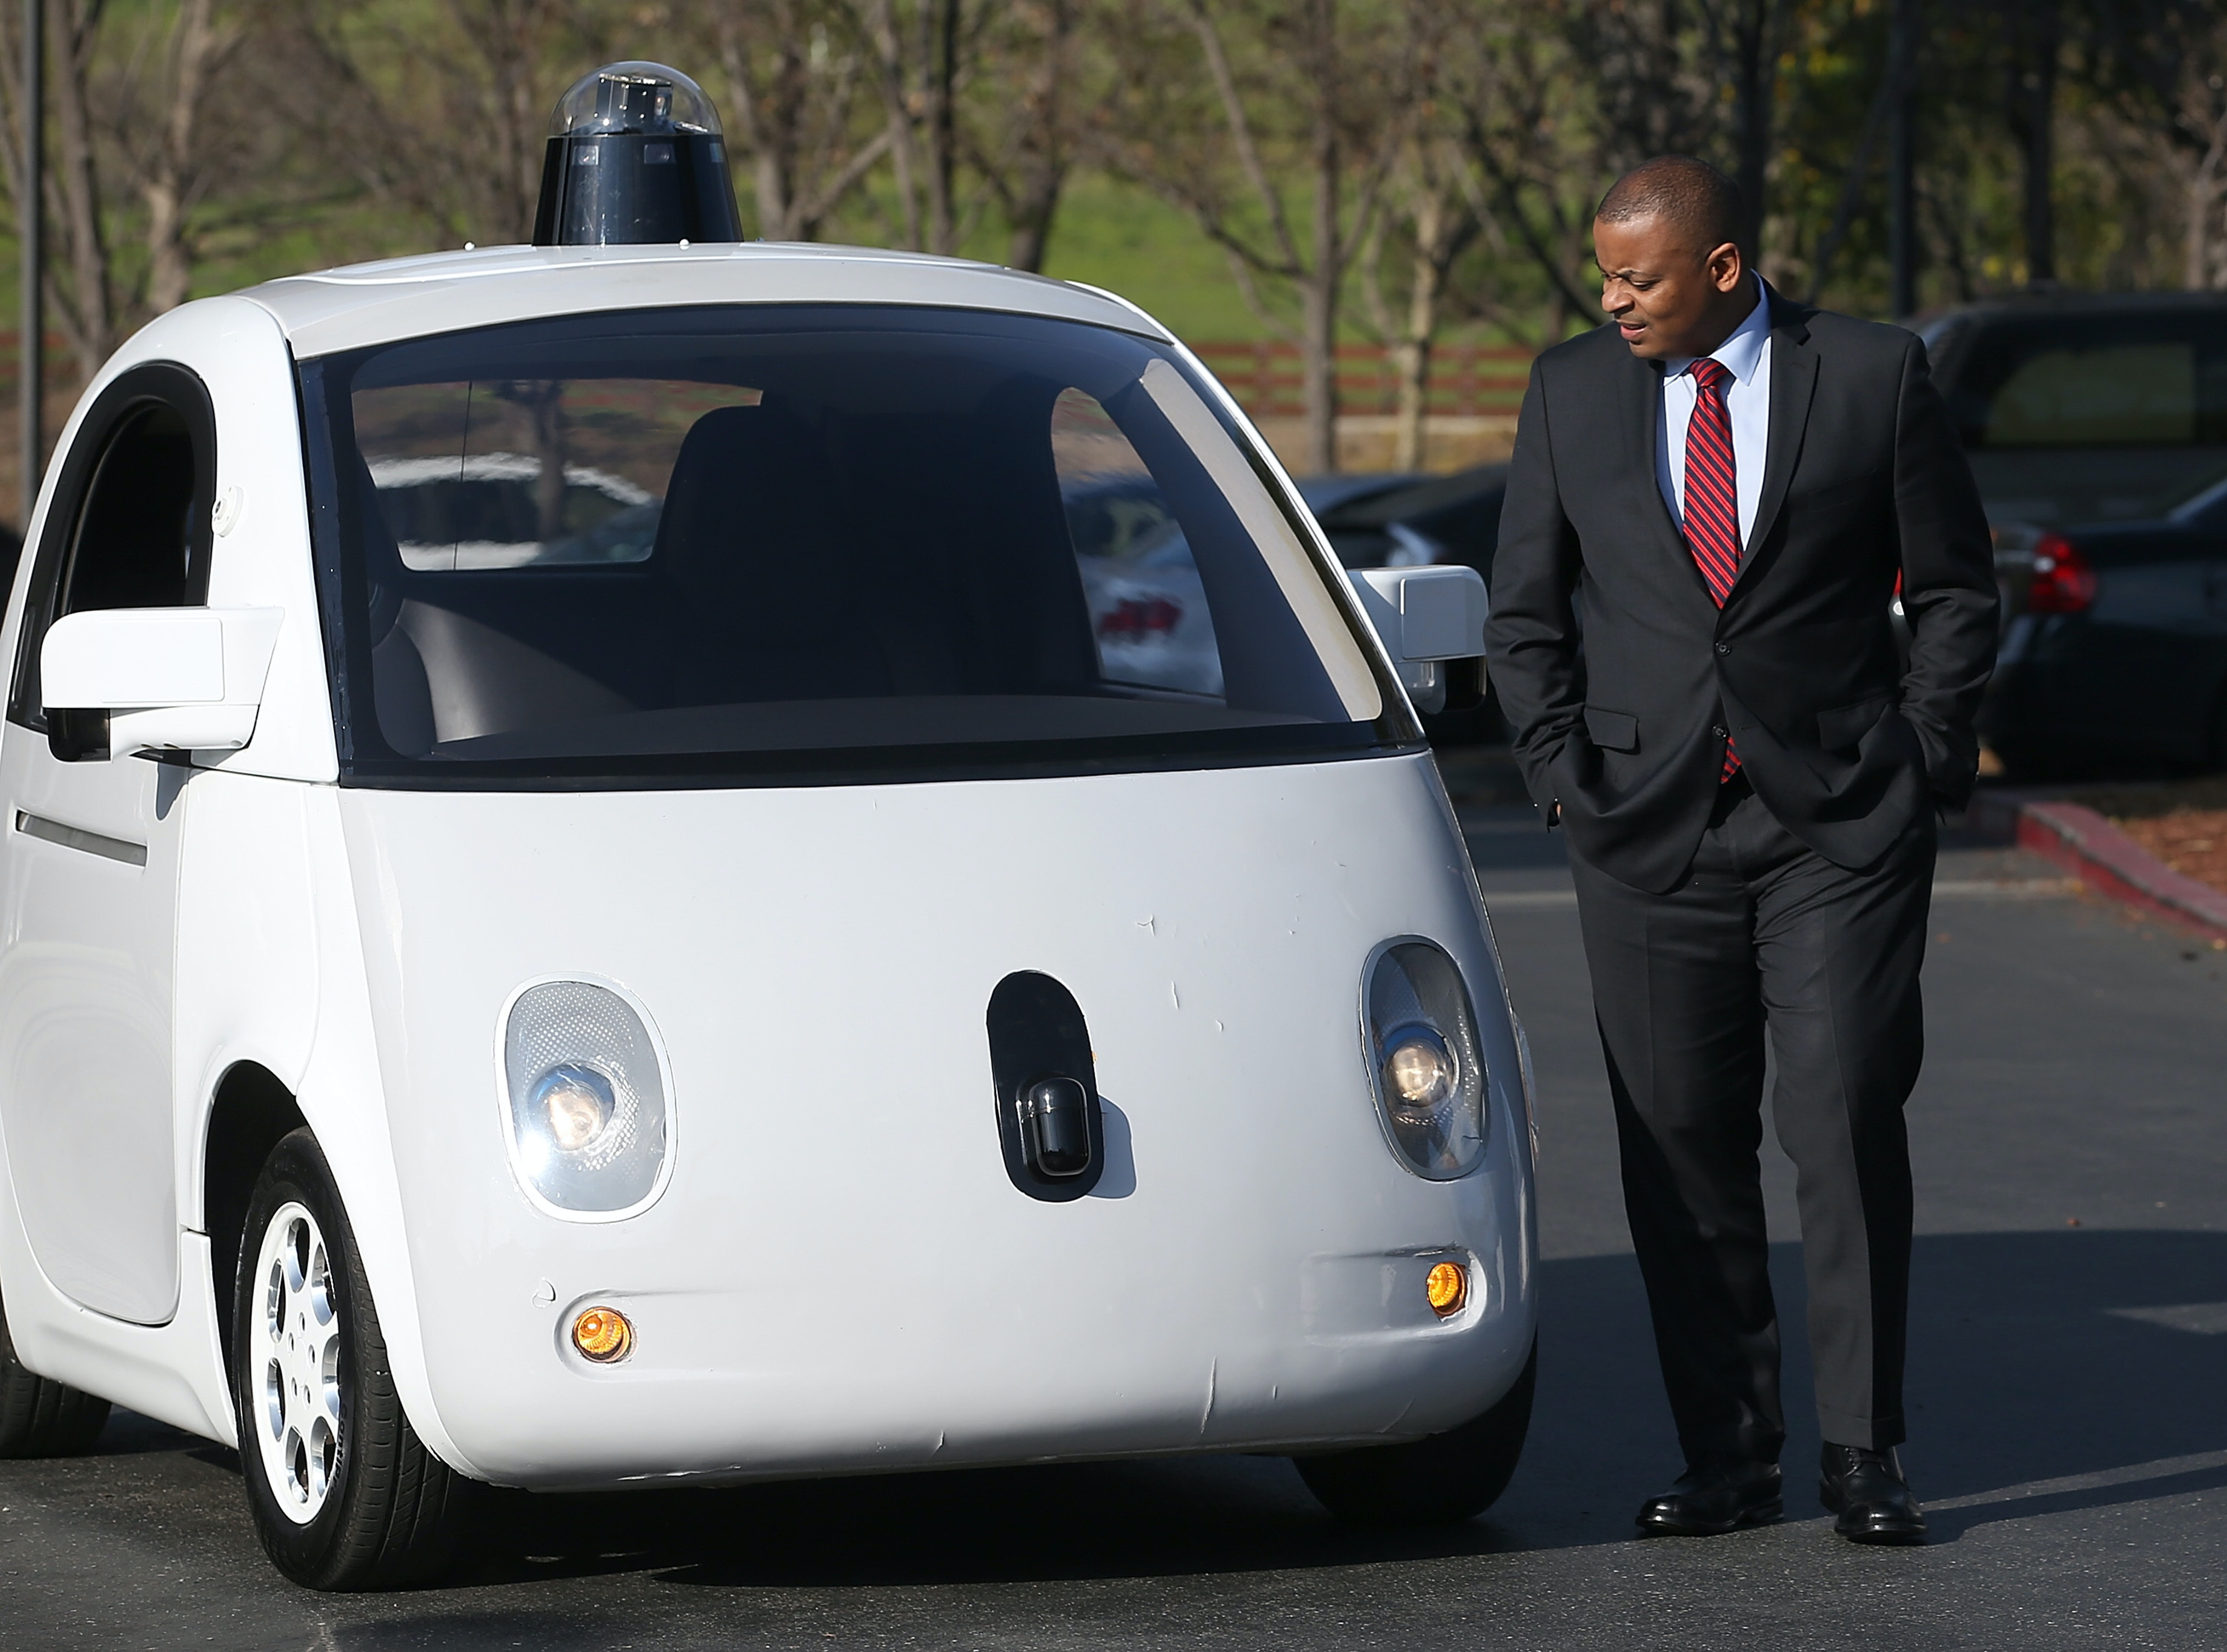 Transportation Secretary Anthony Foxx inspects a Google self-driving car.